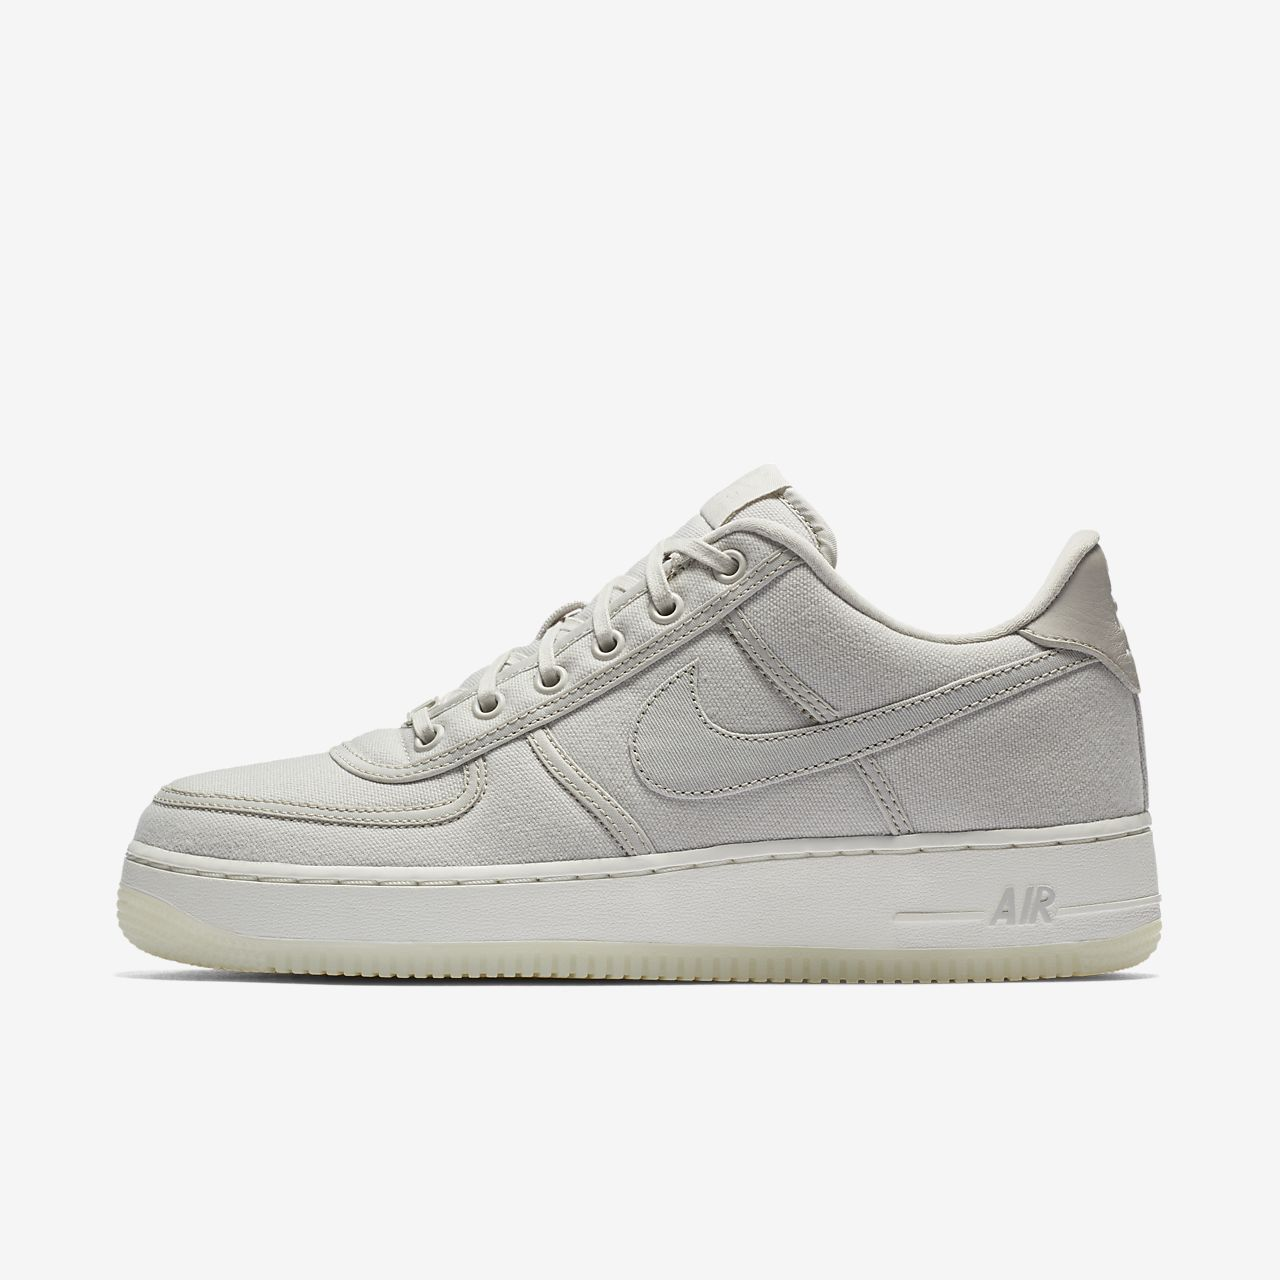 buy online c5da4 18f9f ... Nike Air Force 1 Low Retro QS Men s Shoe